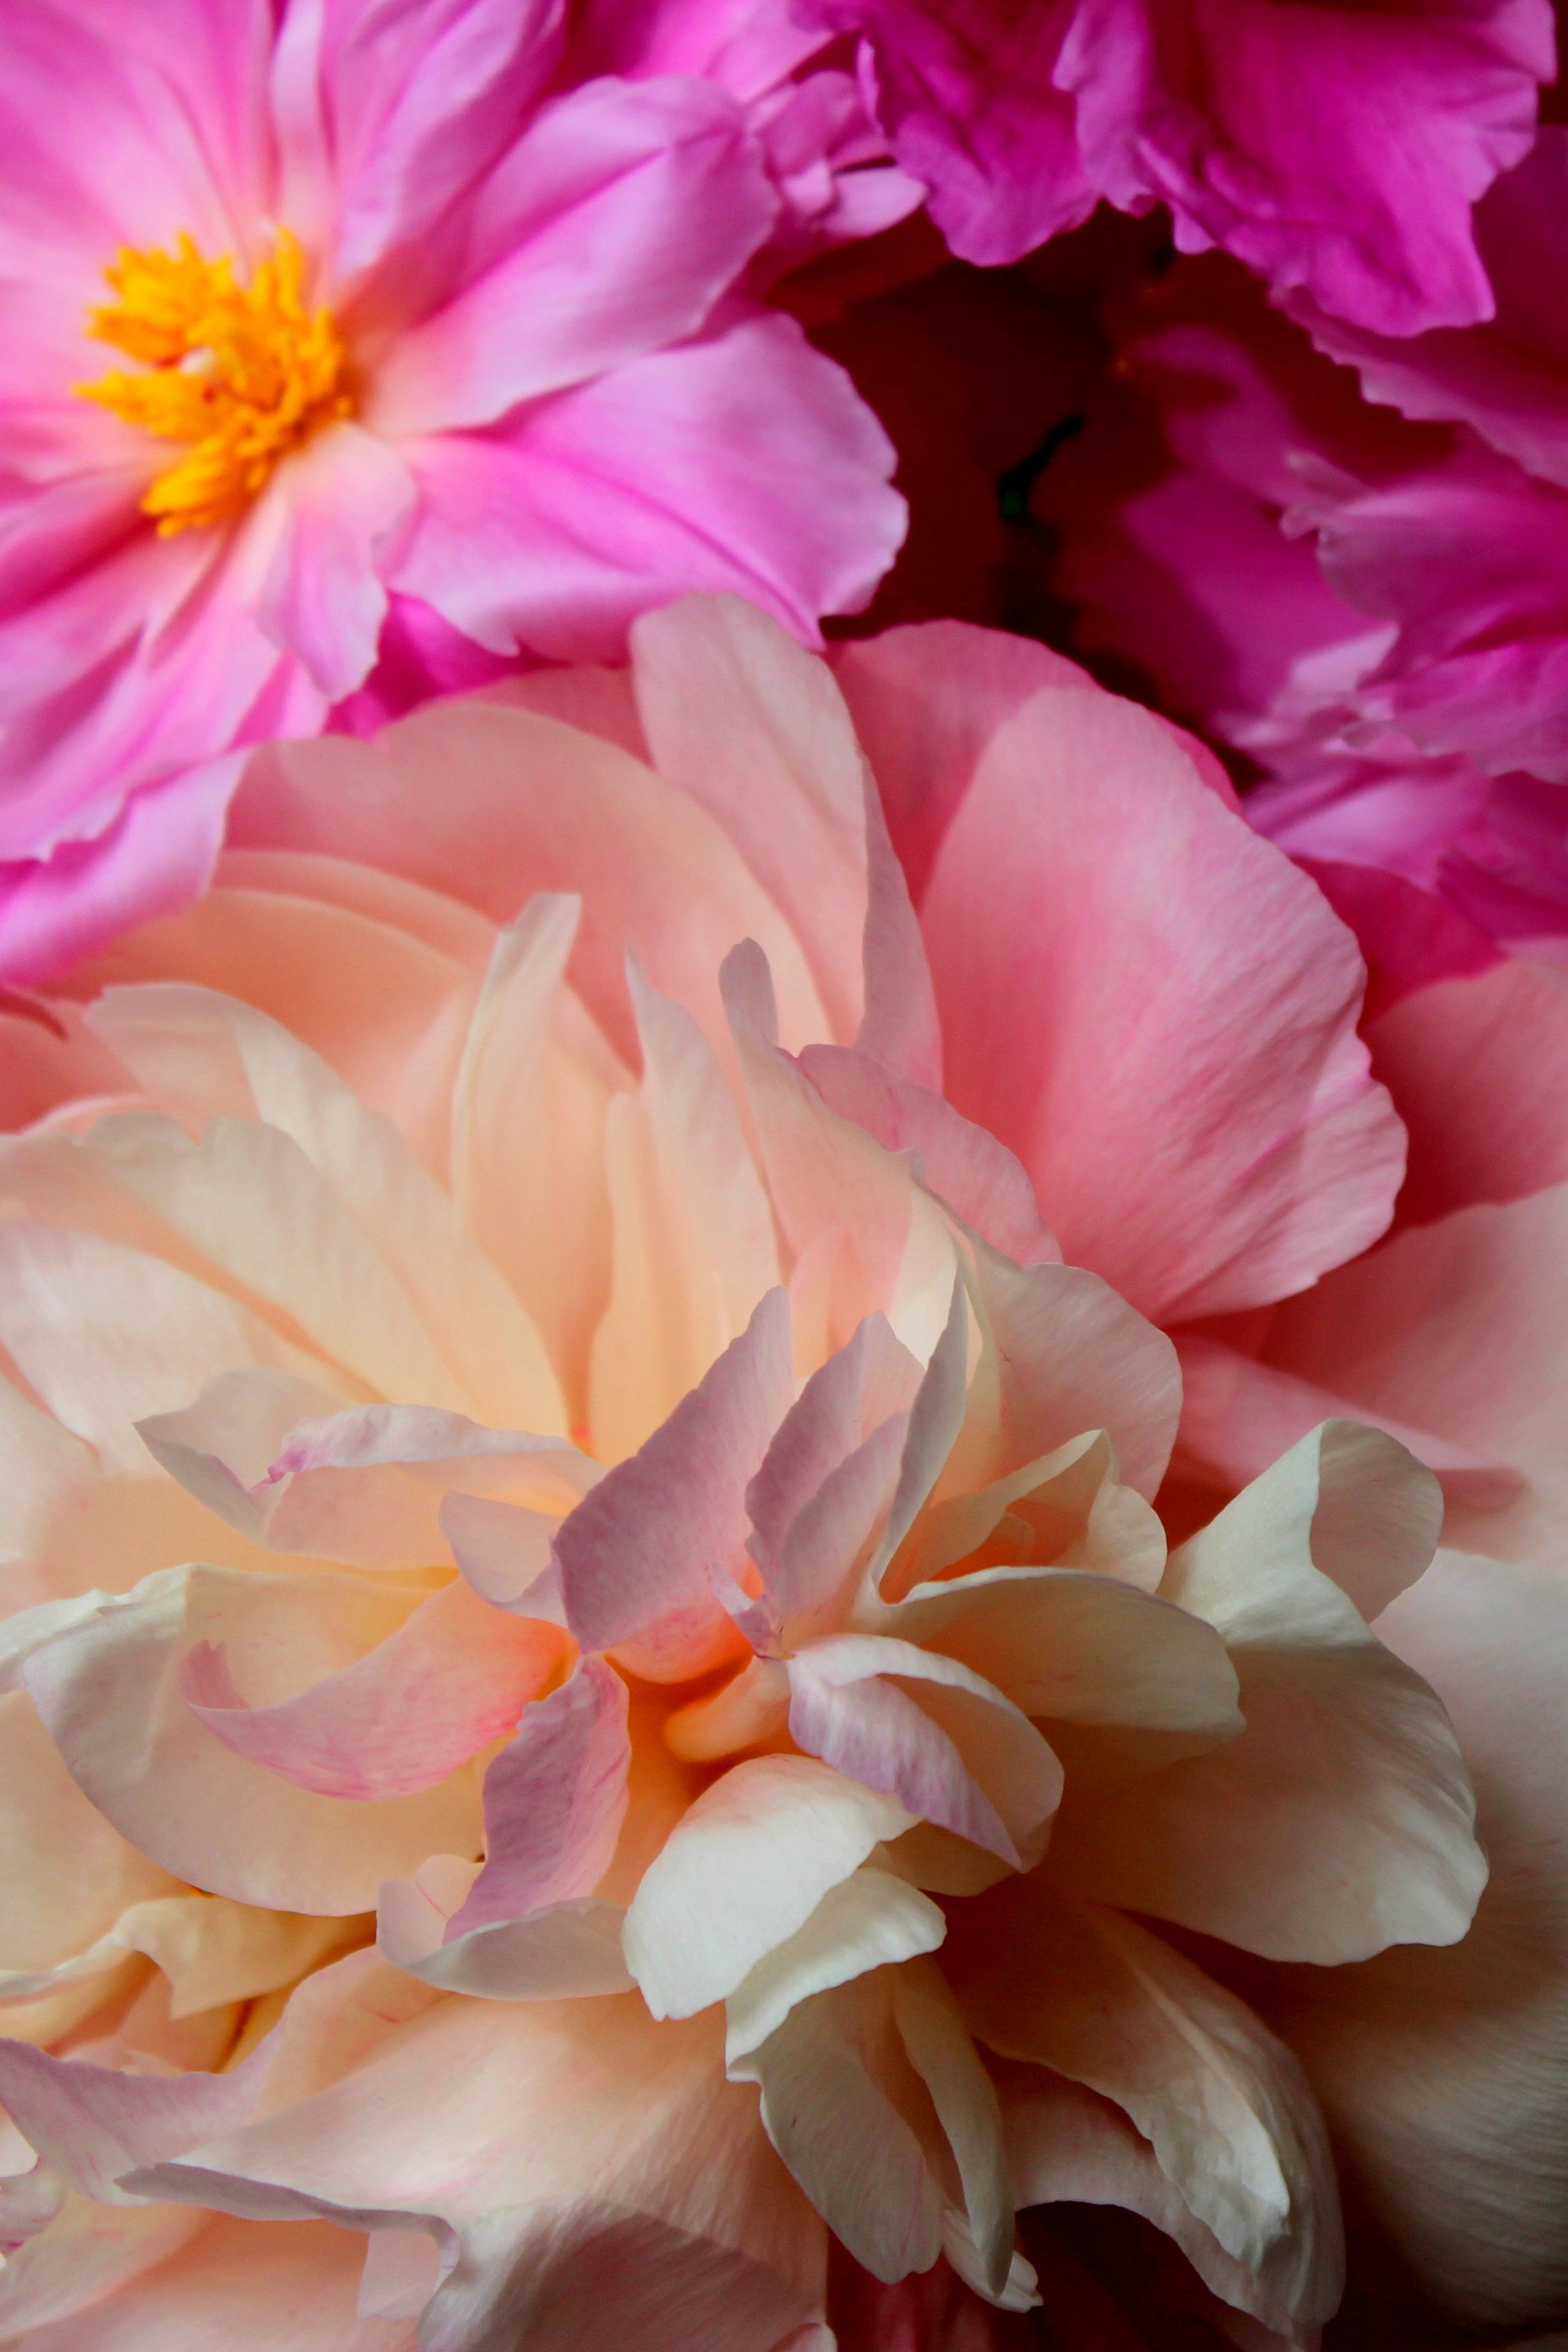 Up close and personal with #beautiful #peonies #flower ...